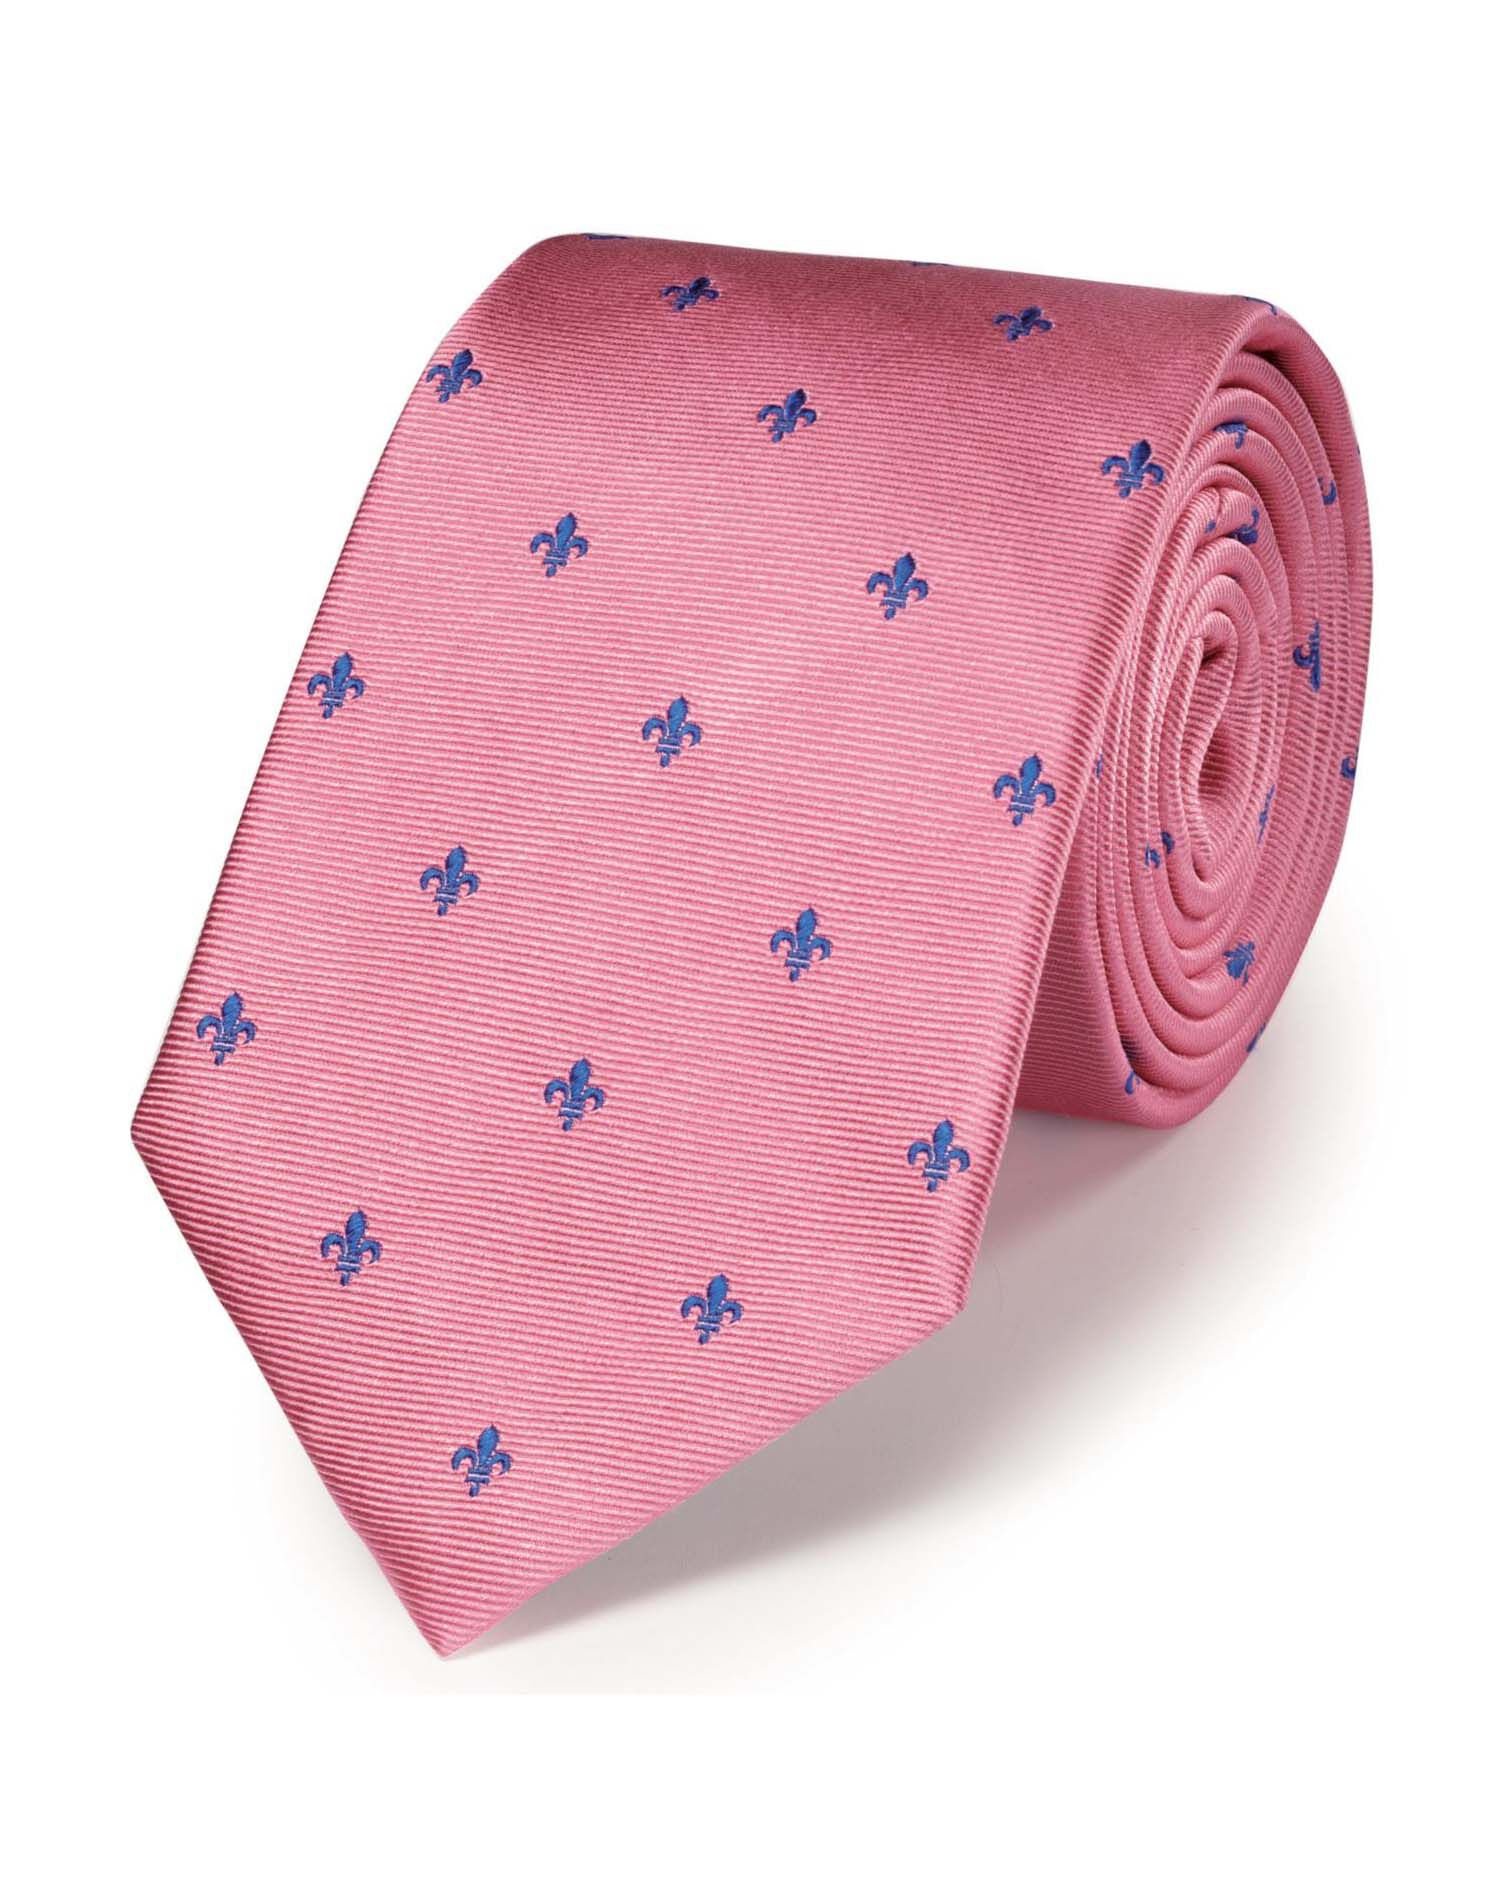 Pink and Royal Blue Silk Classic Fleur-De-Lys Tie Size OSFA by Charles Tyrwhitt